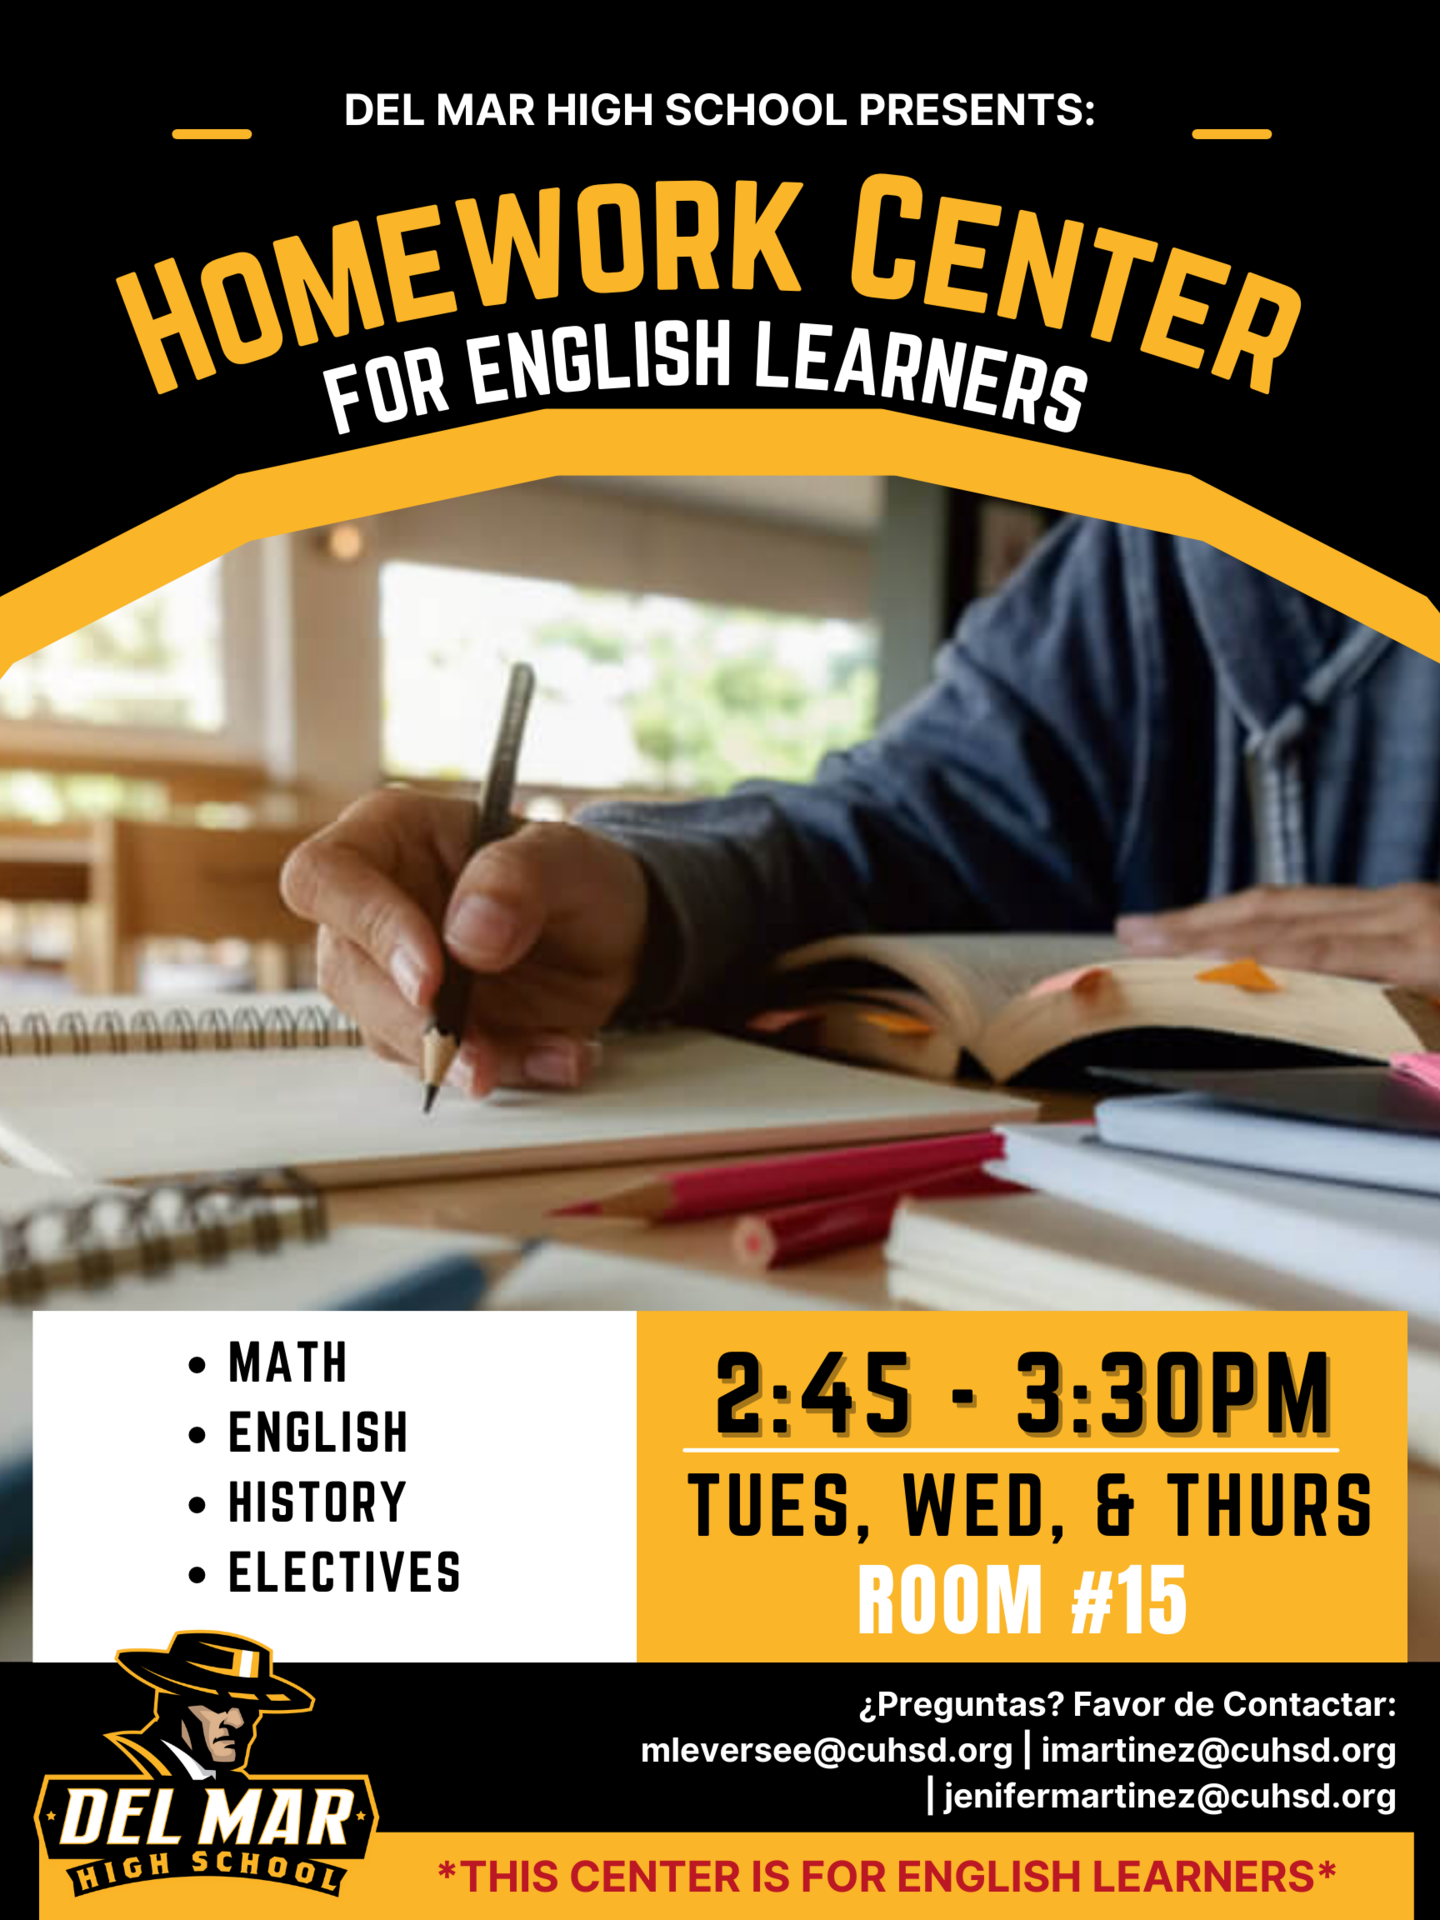 homework center for english learners